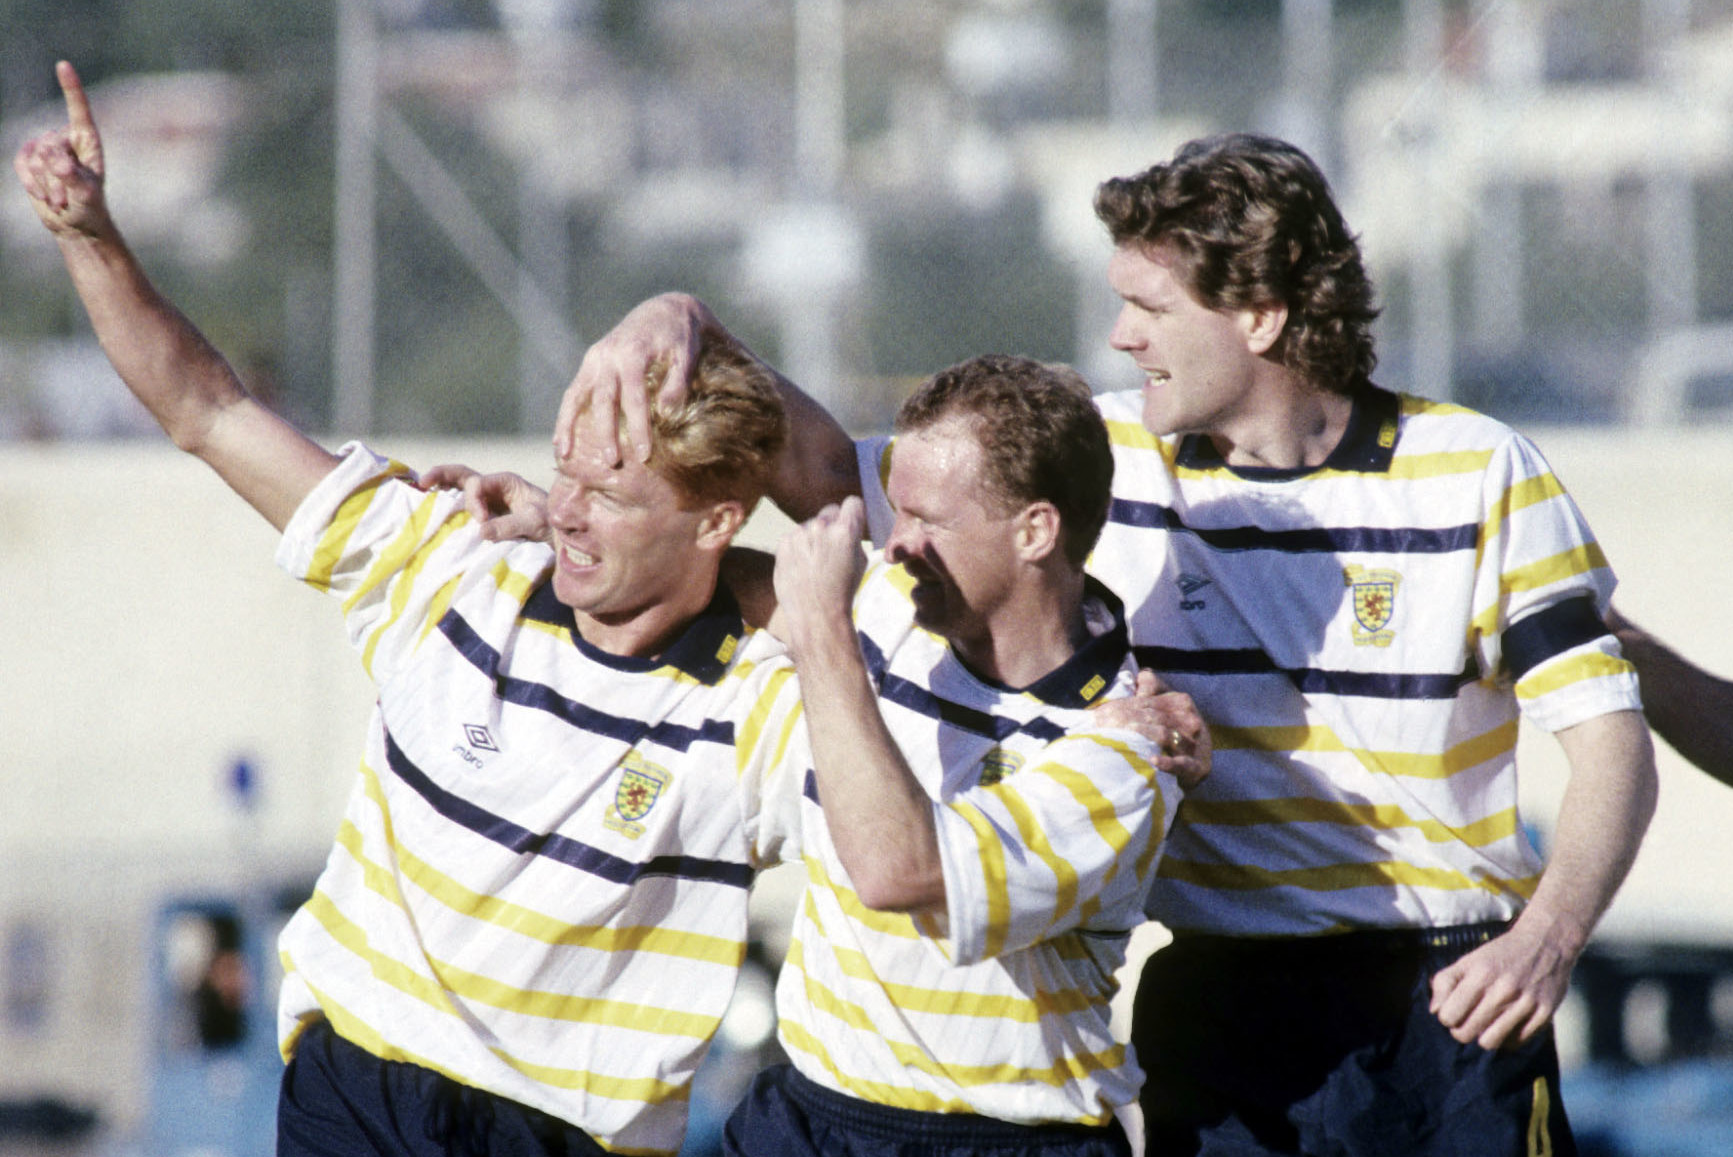 Neil Cameron: Steve Clarke is going to make Scotland as exciting as we were in 1989